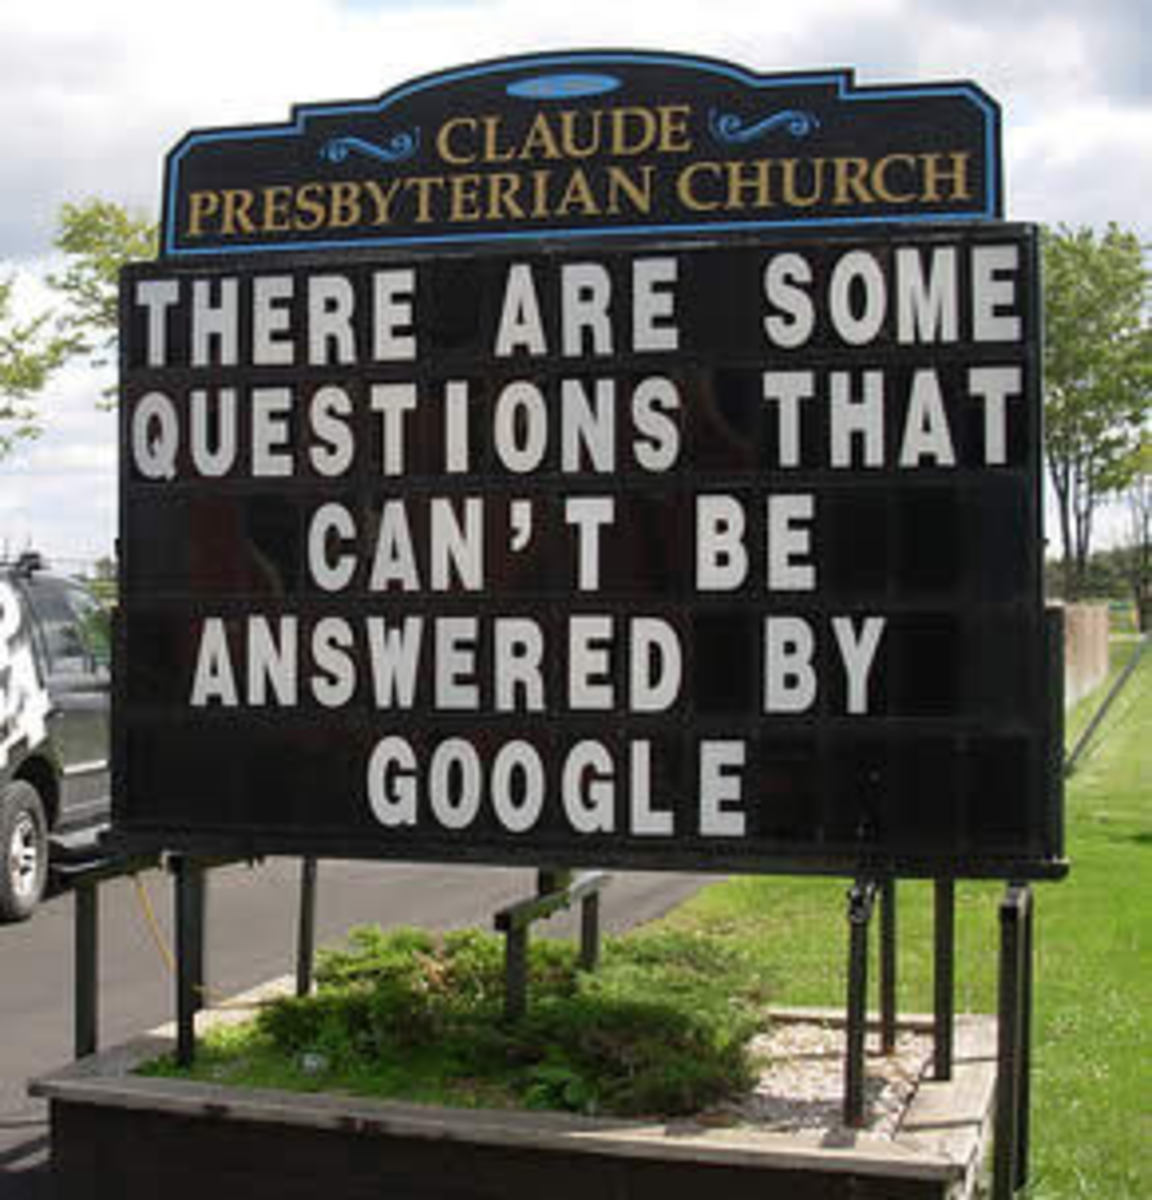 Church Sign - There are some questions that can't be answered by Google